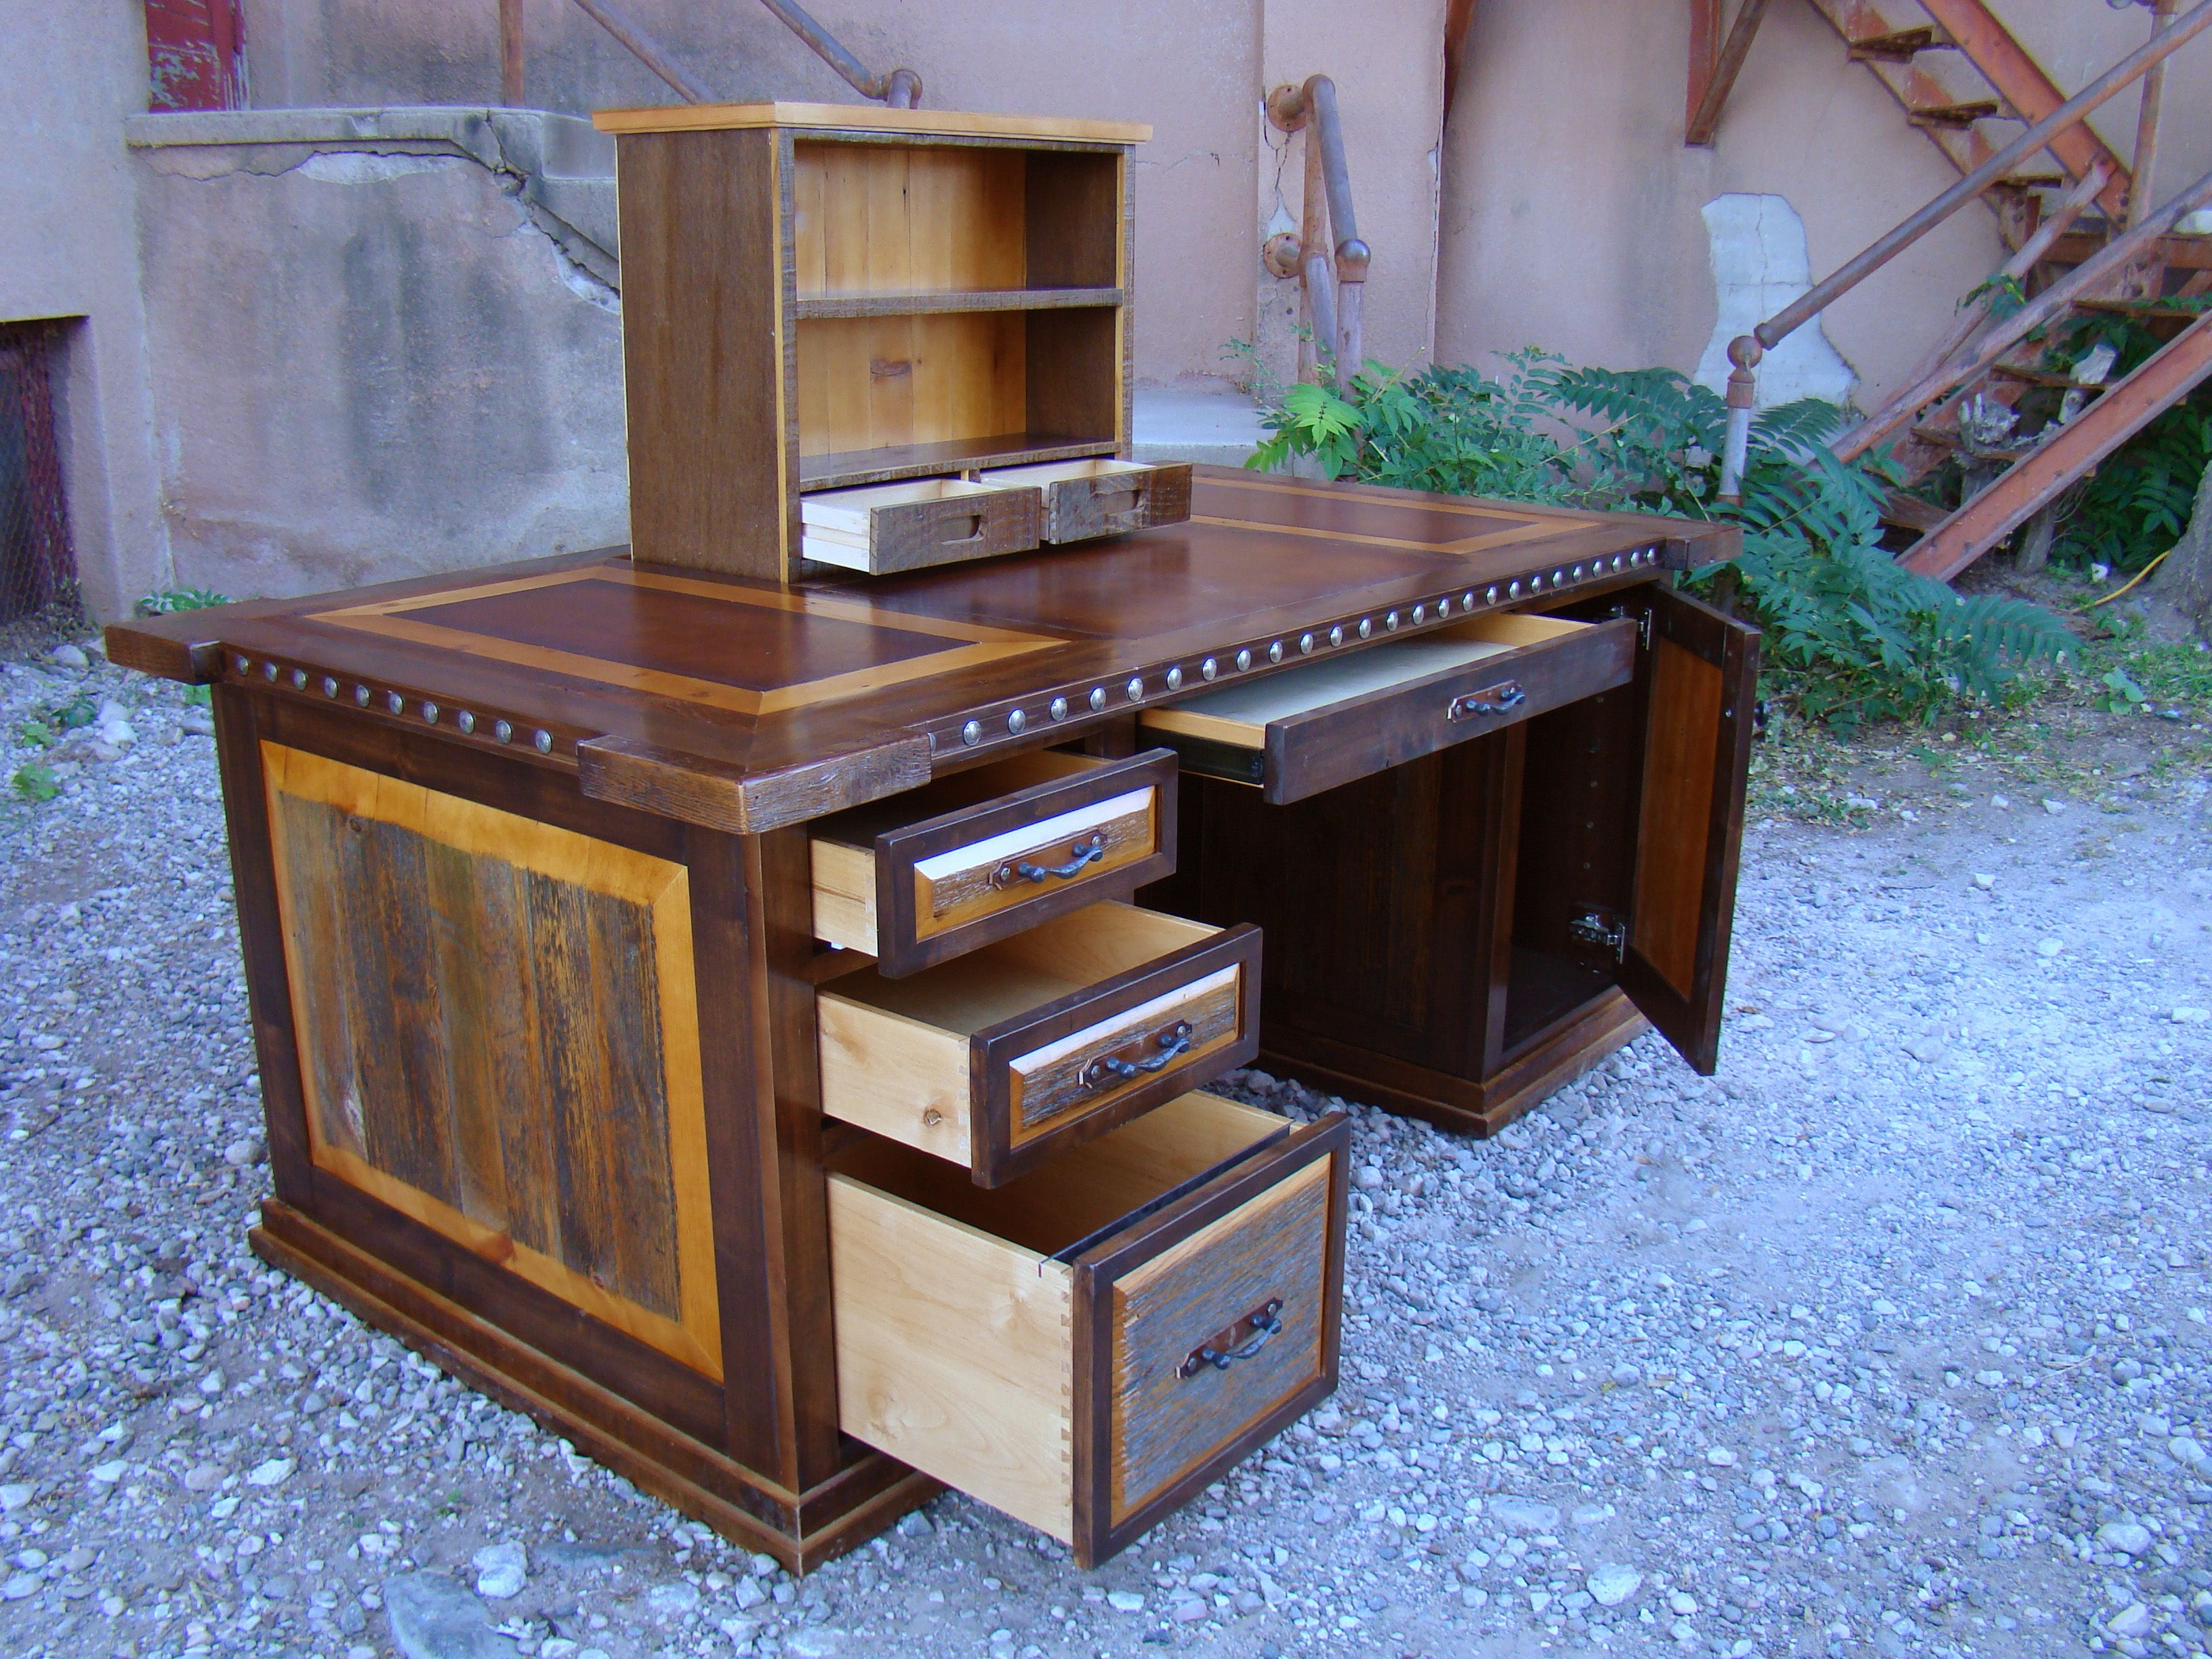 c burr desk desks davenport hidden desirable from regent walnut pop compartment with blog up antique more antiques